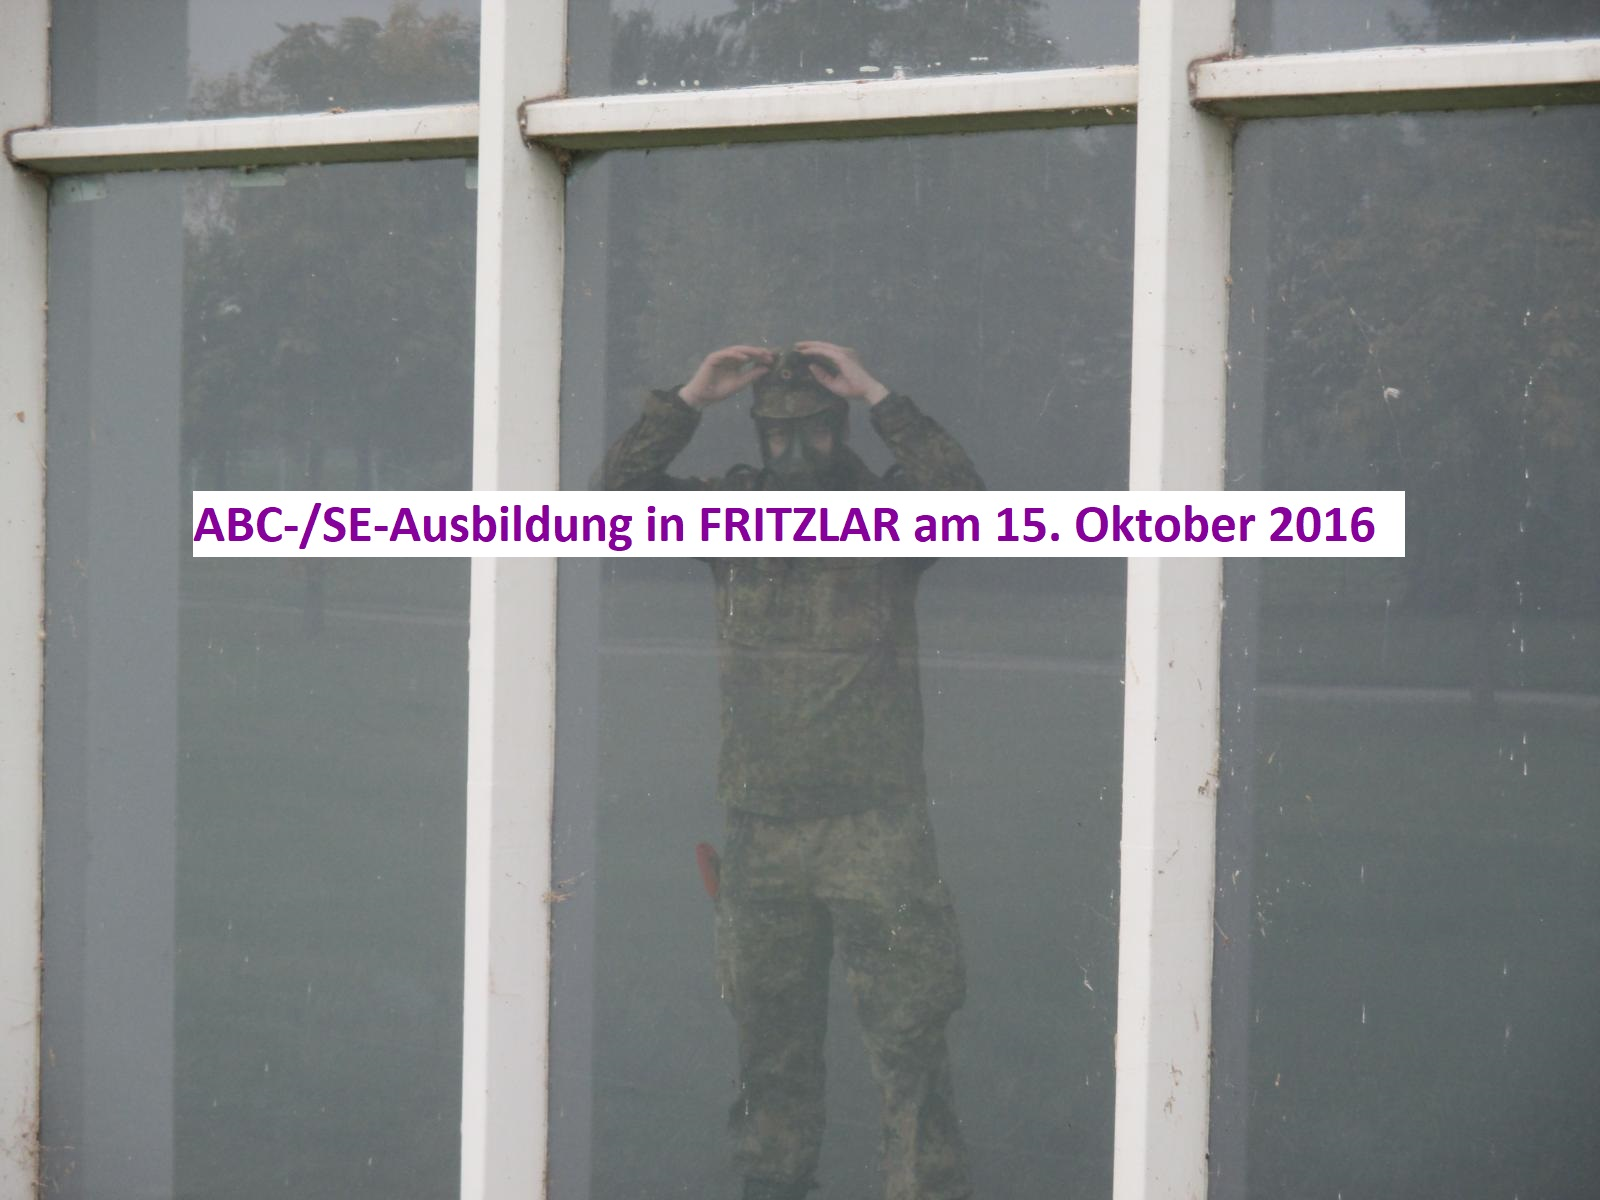 ABC-/SE-Ausbildung